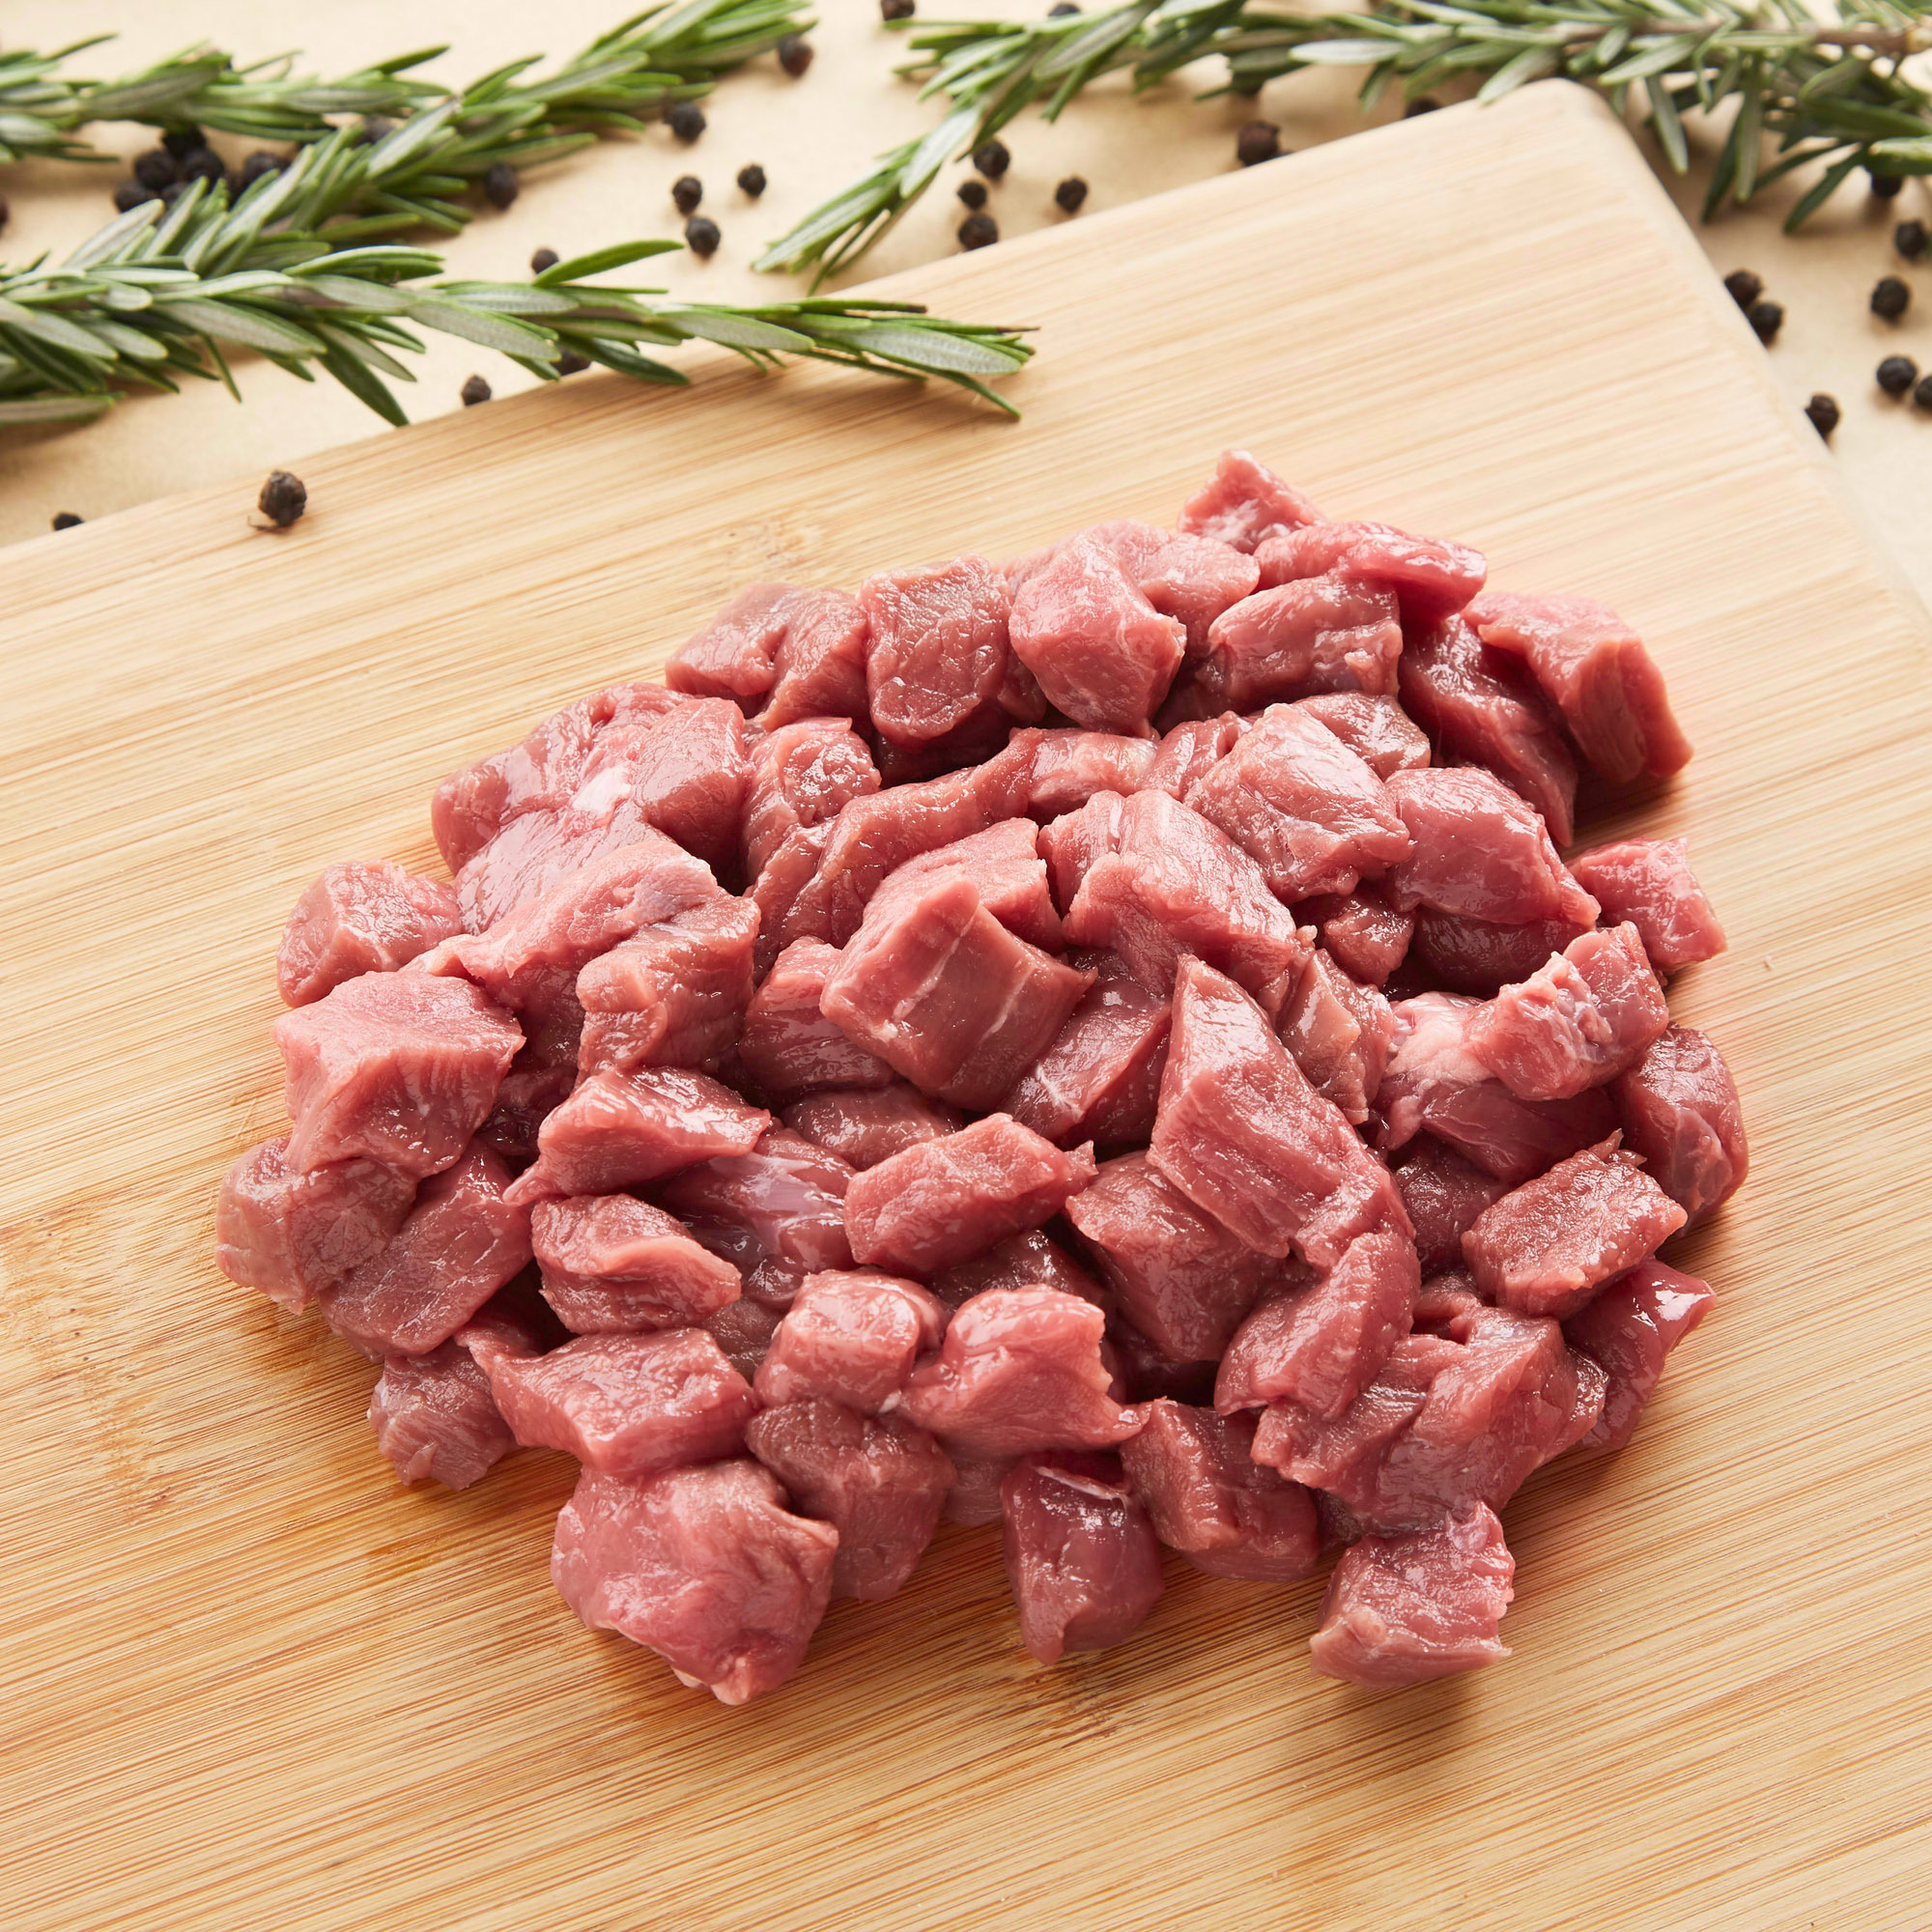 2 X FRESH LAMB DICED 250G - Singapore's Healthiest Online Grocery